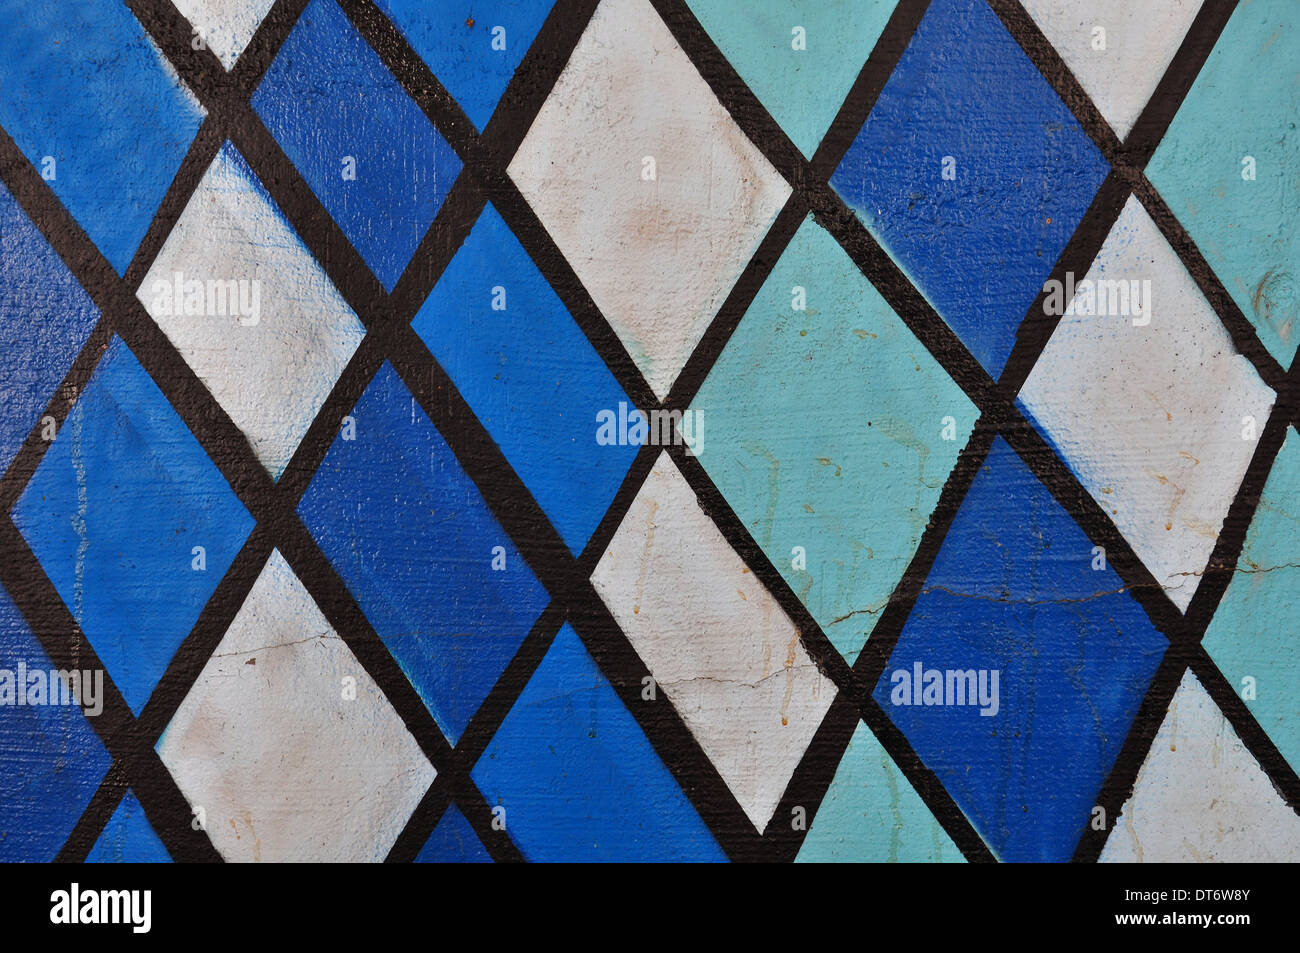 Shades Of Blue Paint Abstract Paint Pattern Geometric Shapes In Shades Of Blue